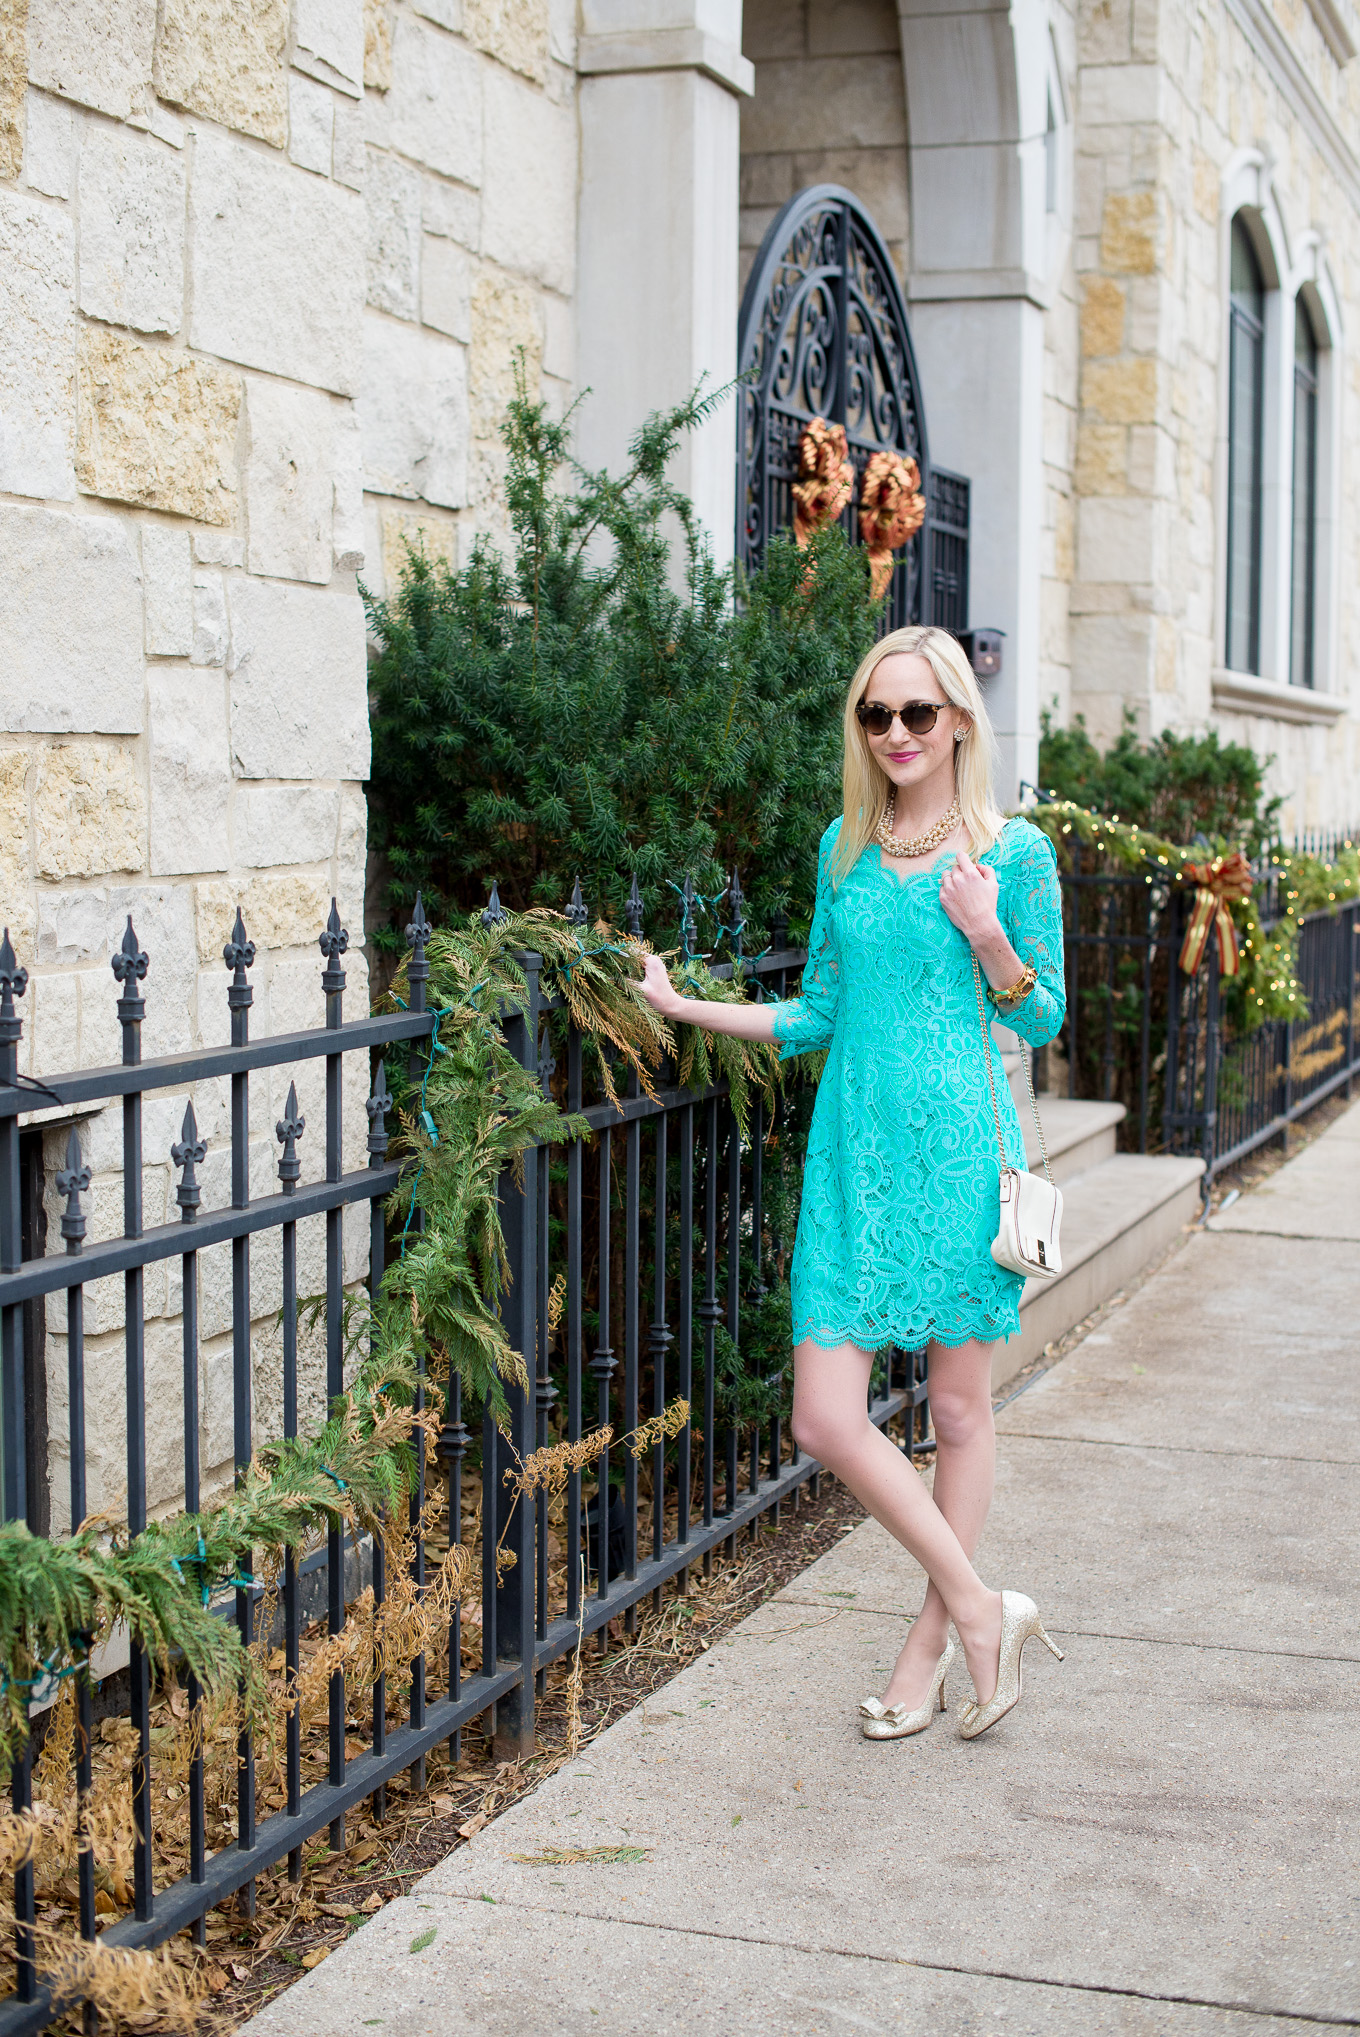 Lilly-Pulitzer-Lace-Dress-4